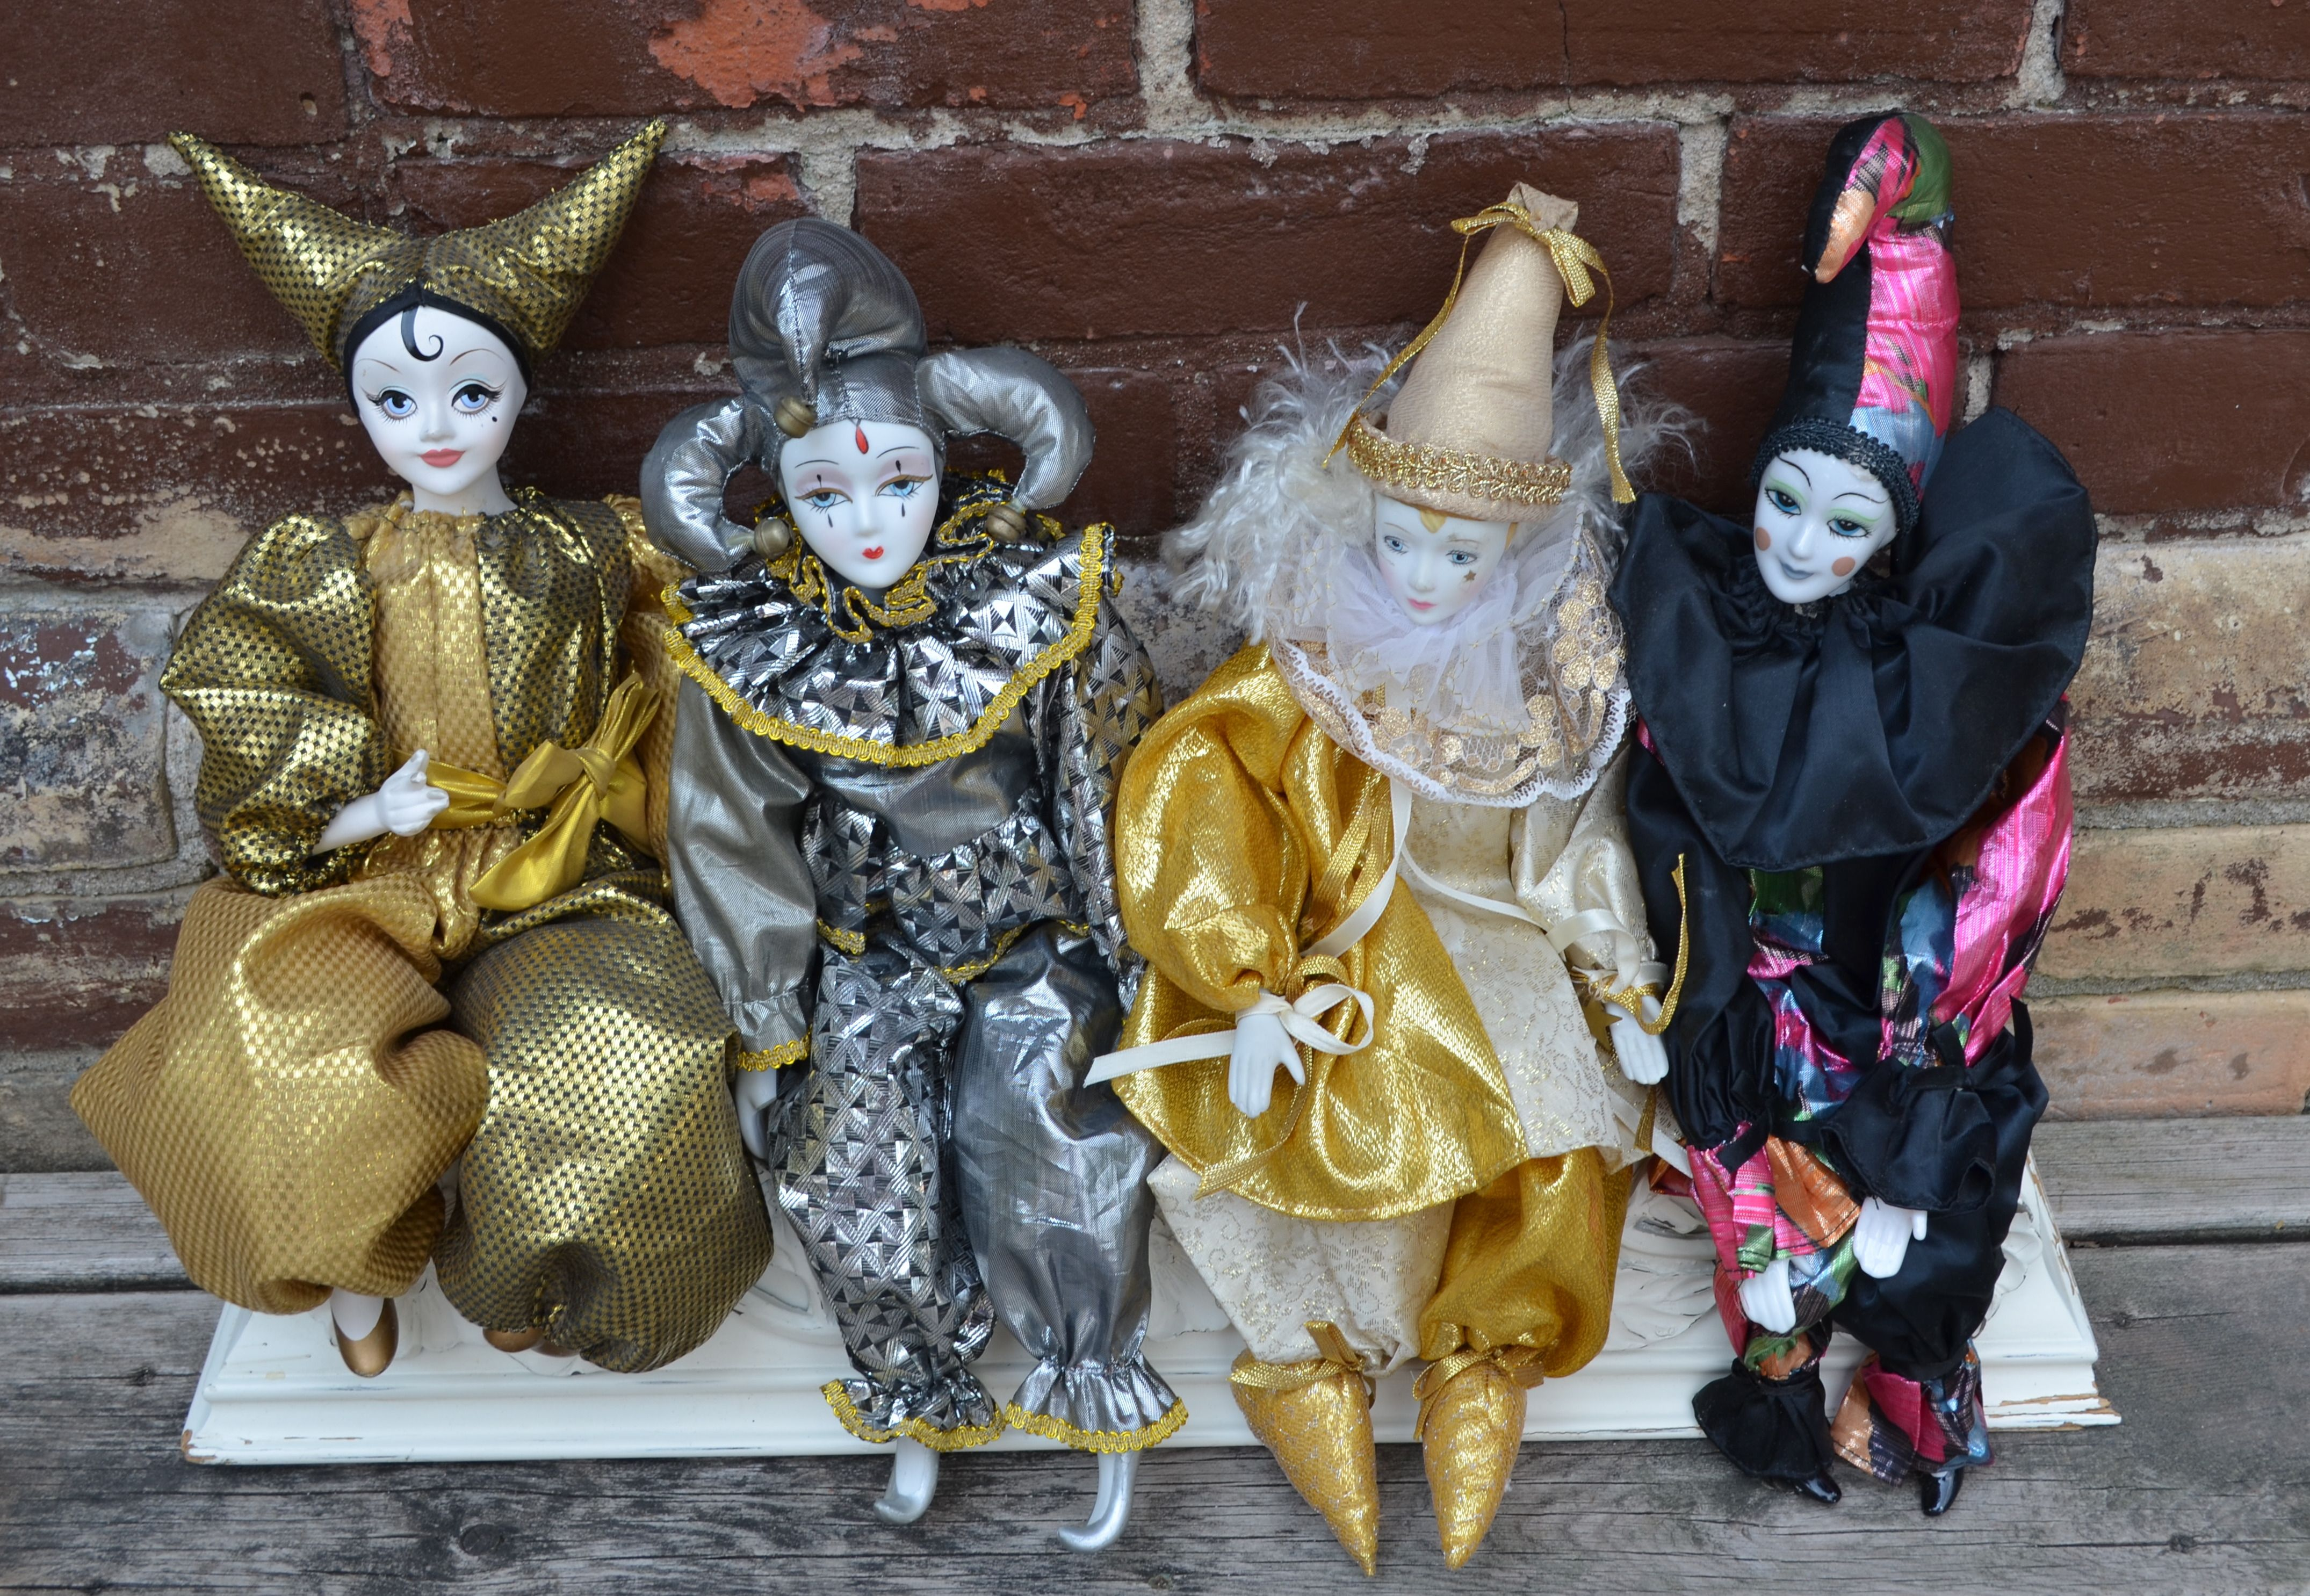 Jester/Harlequin dolls $15 for all (With images) | Jester ...